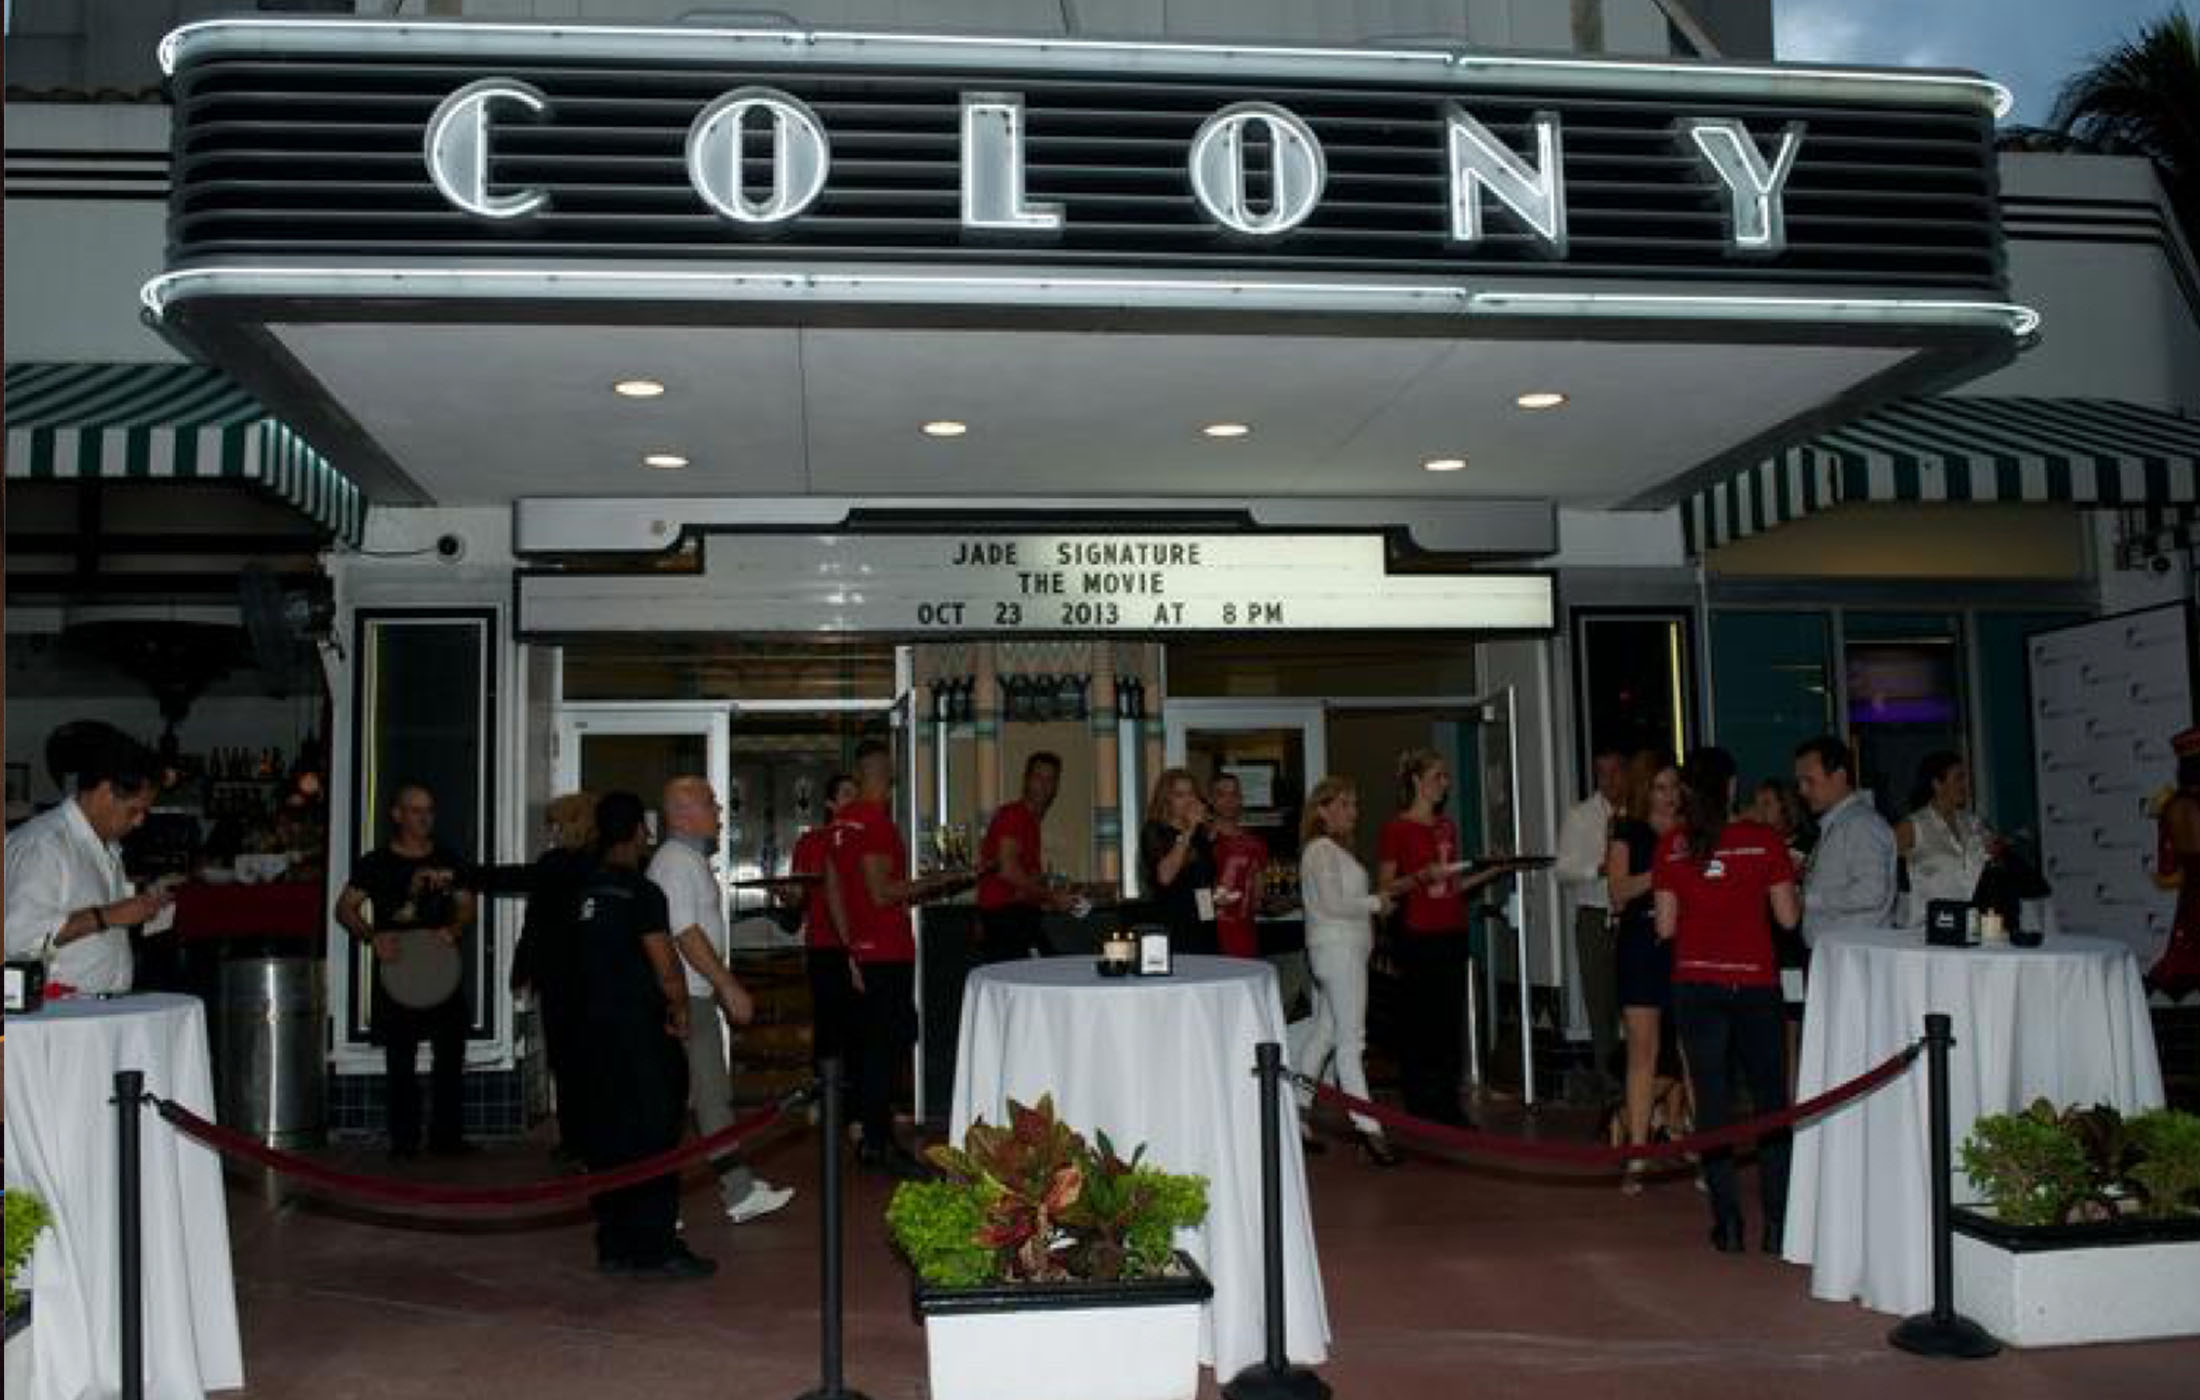 Lincoln Road BID colony theater